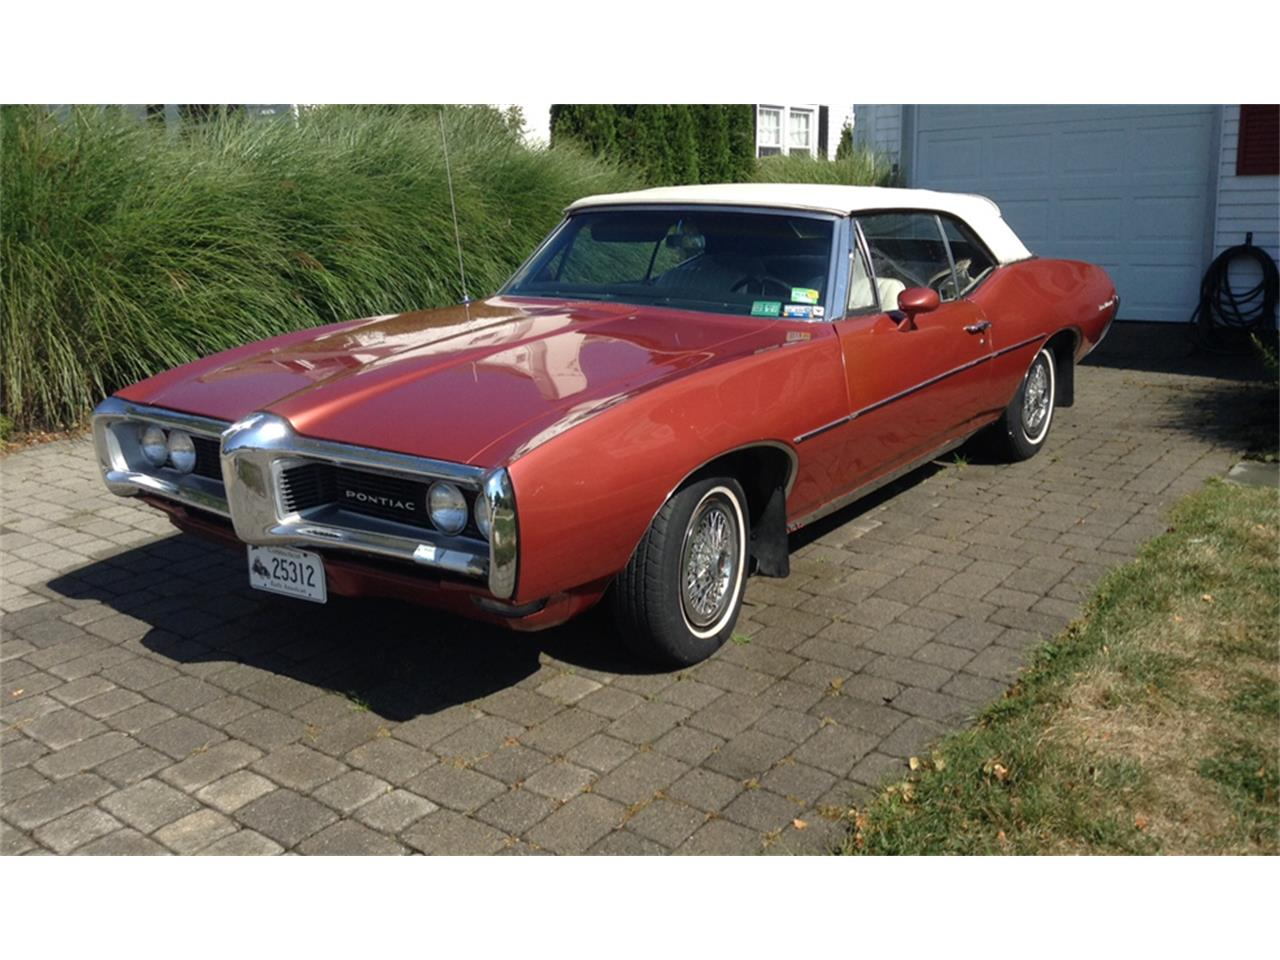 Large Picture of '68 Pontiac LeMans located in New London Connecticut Offered by a Private Seller - KHIF